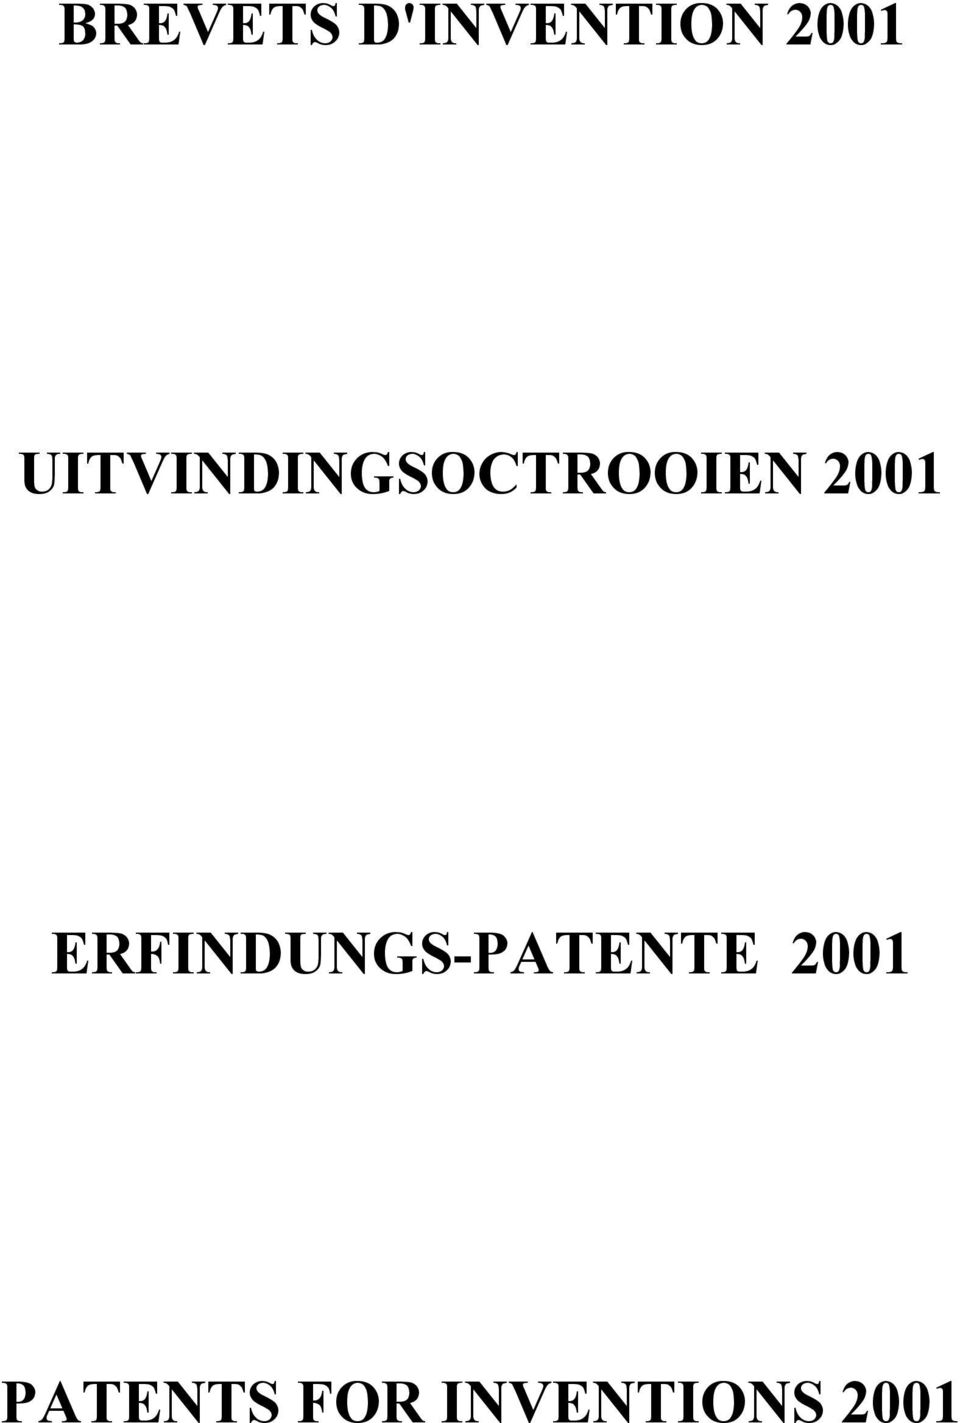 ERFINDUNGS-PATENTE 2001